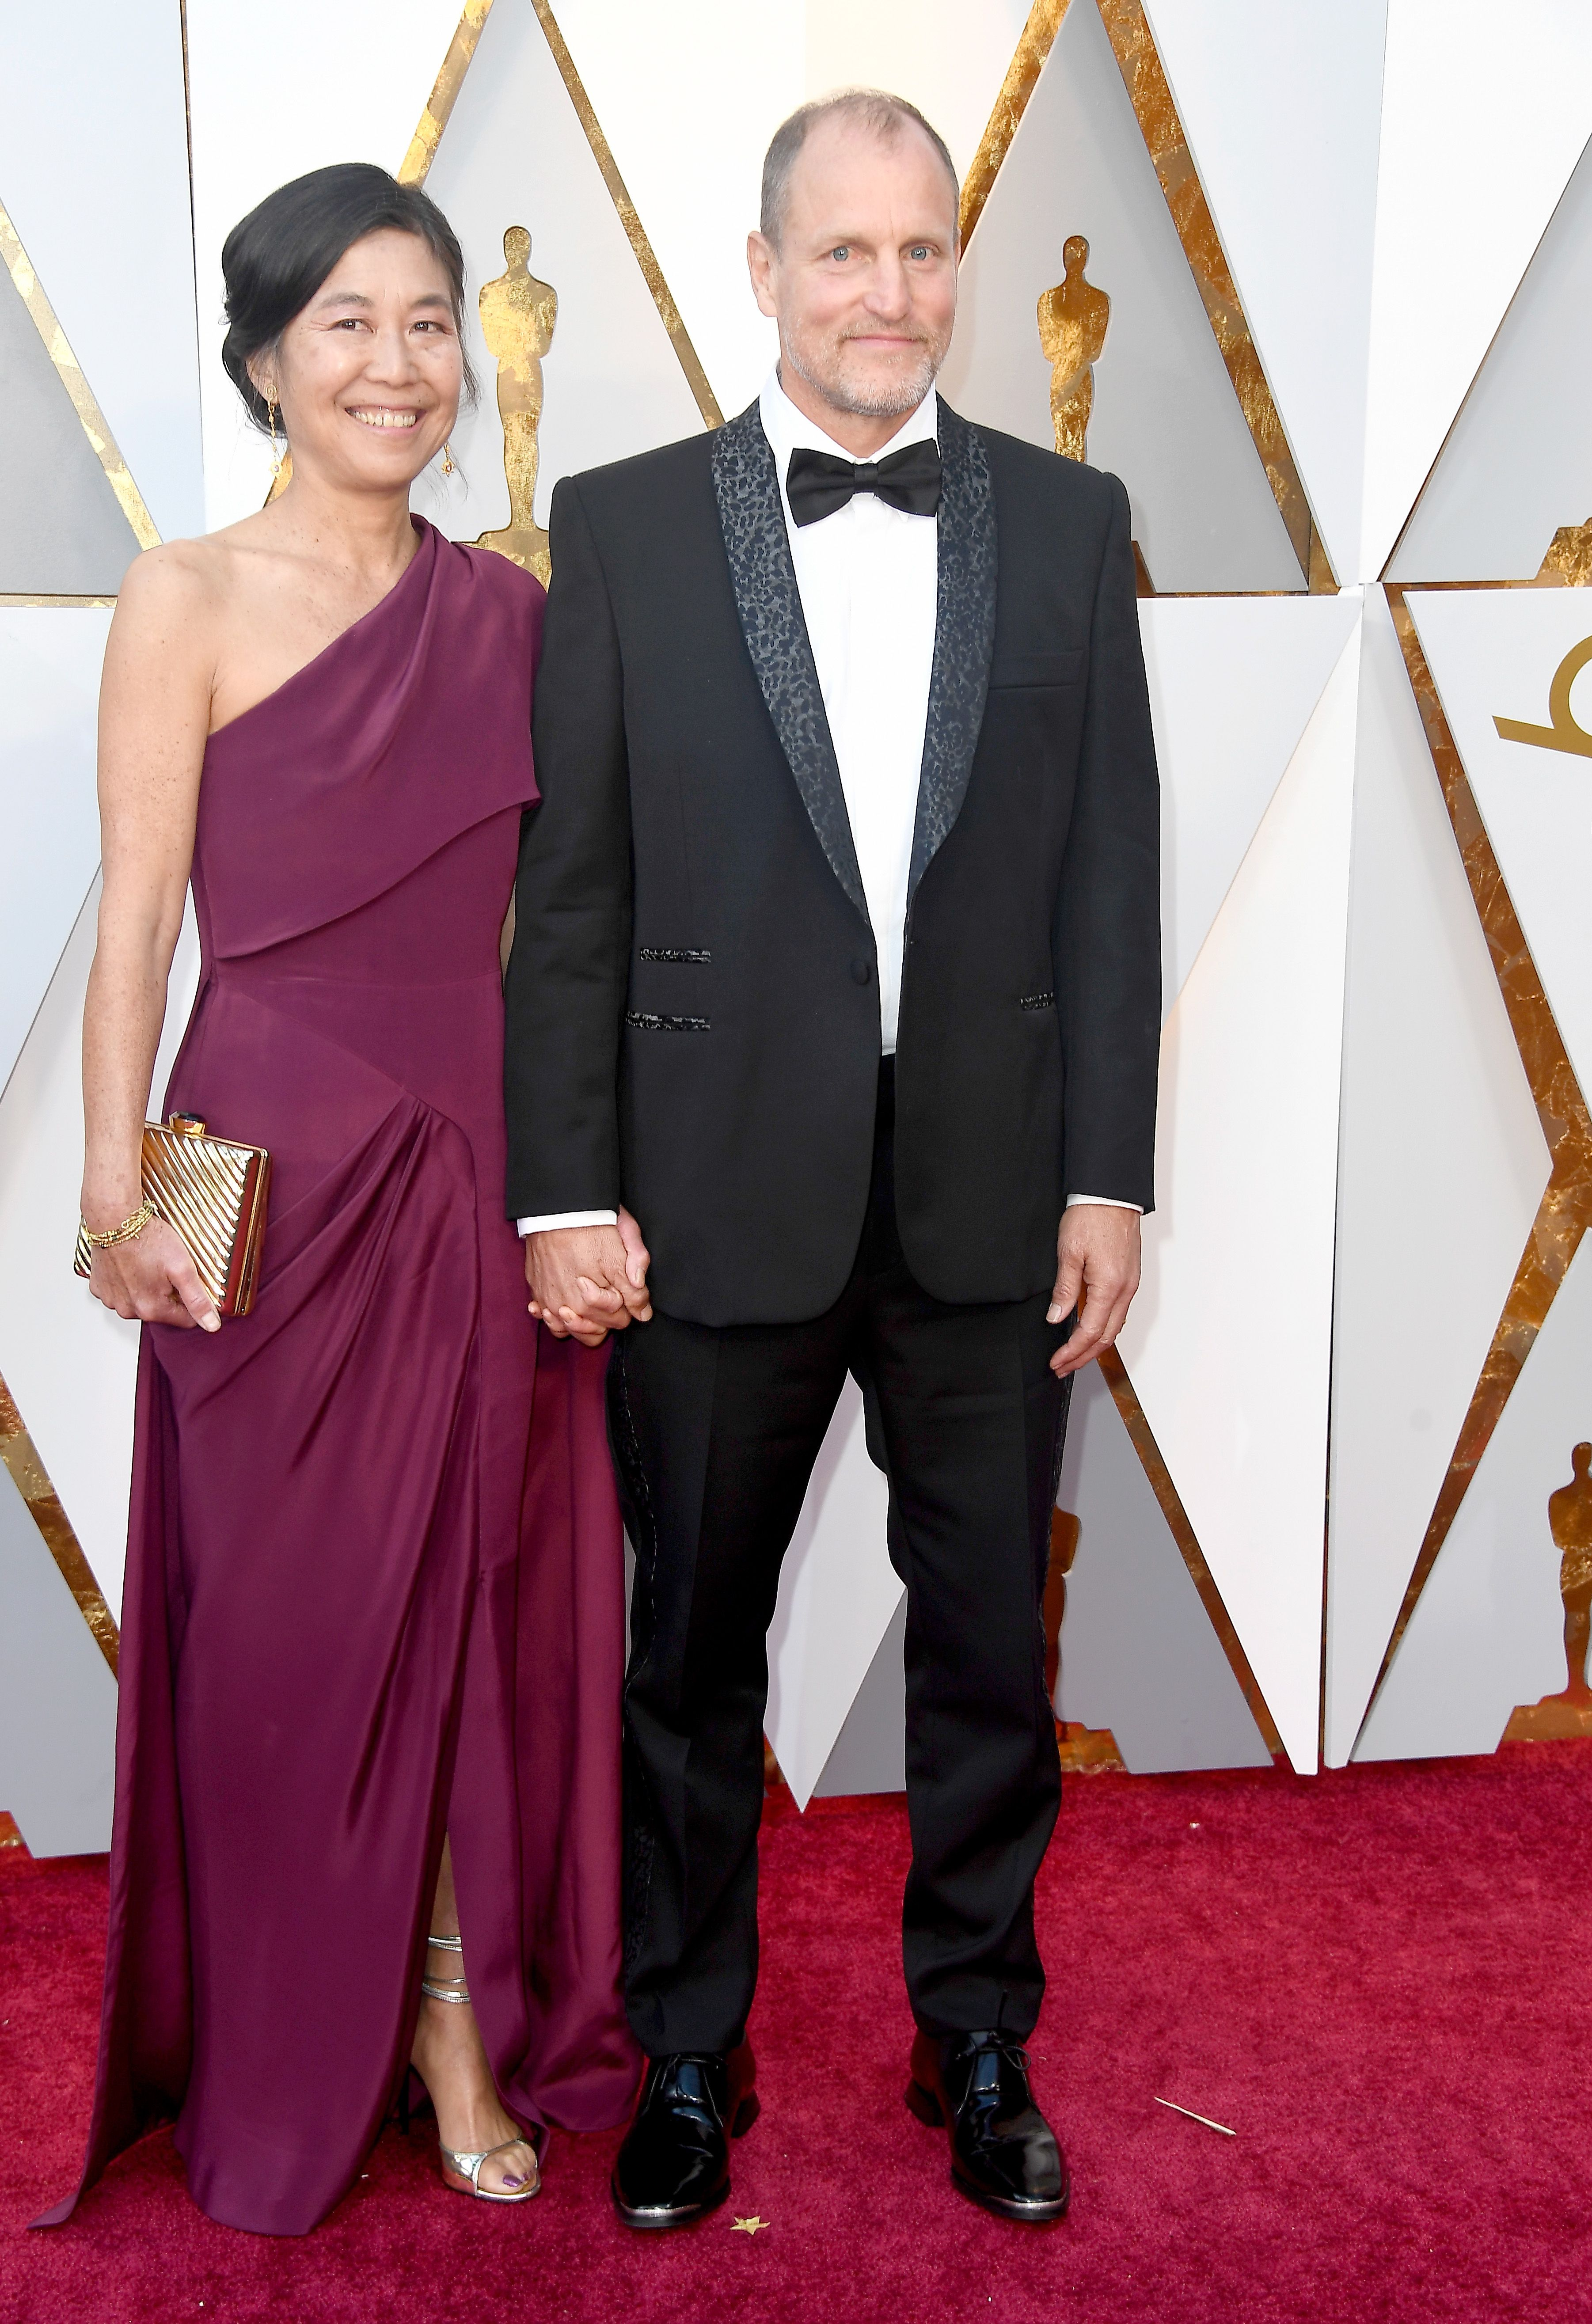 Laura Louie and Woody Harrelson at the 90th Annual Academy Awards on March 4, 2018, in Hollywood, California   Photo: Frazer Harrison/Getty Images